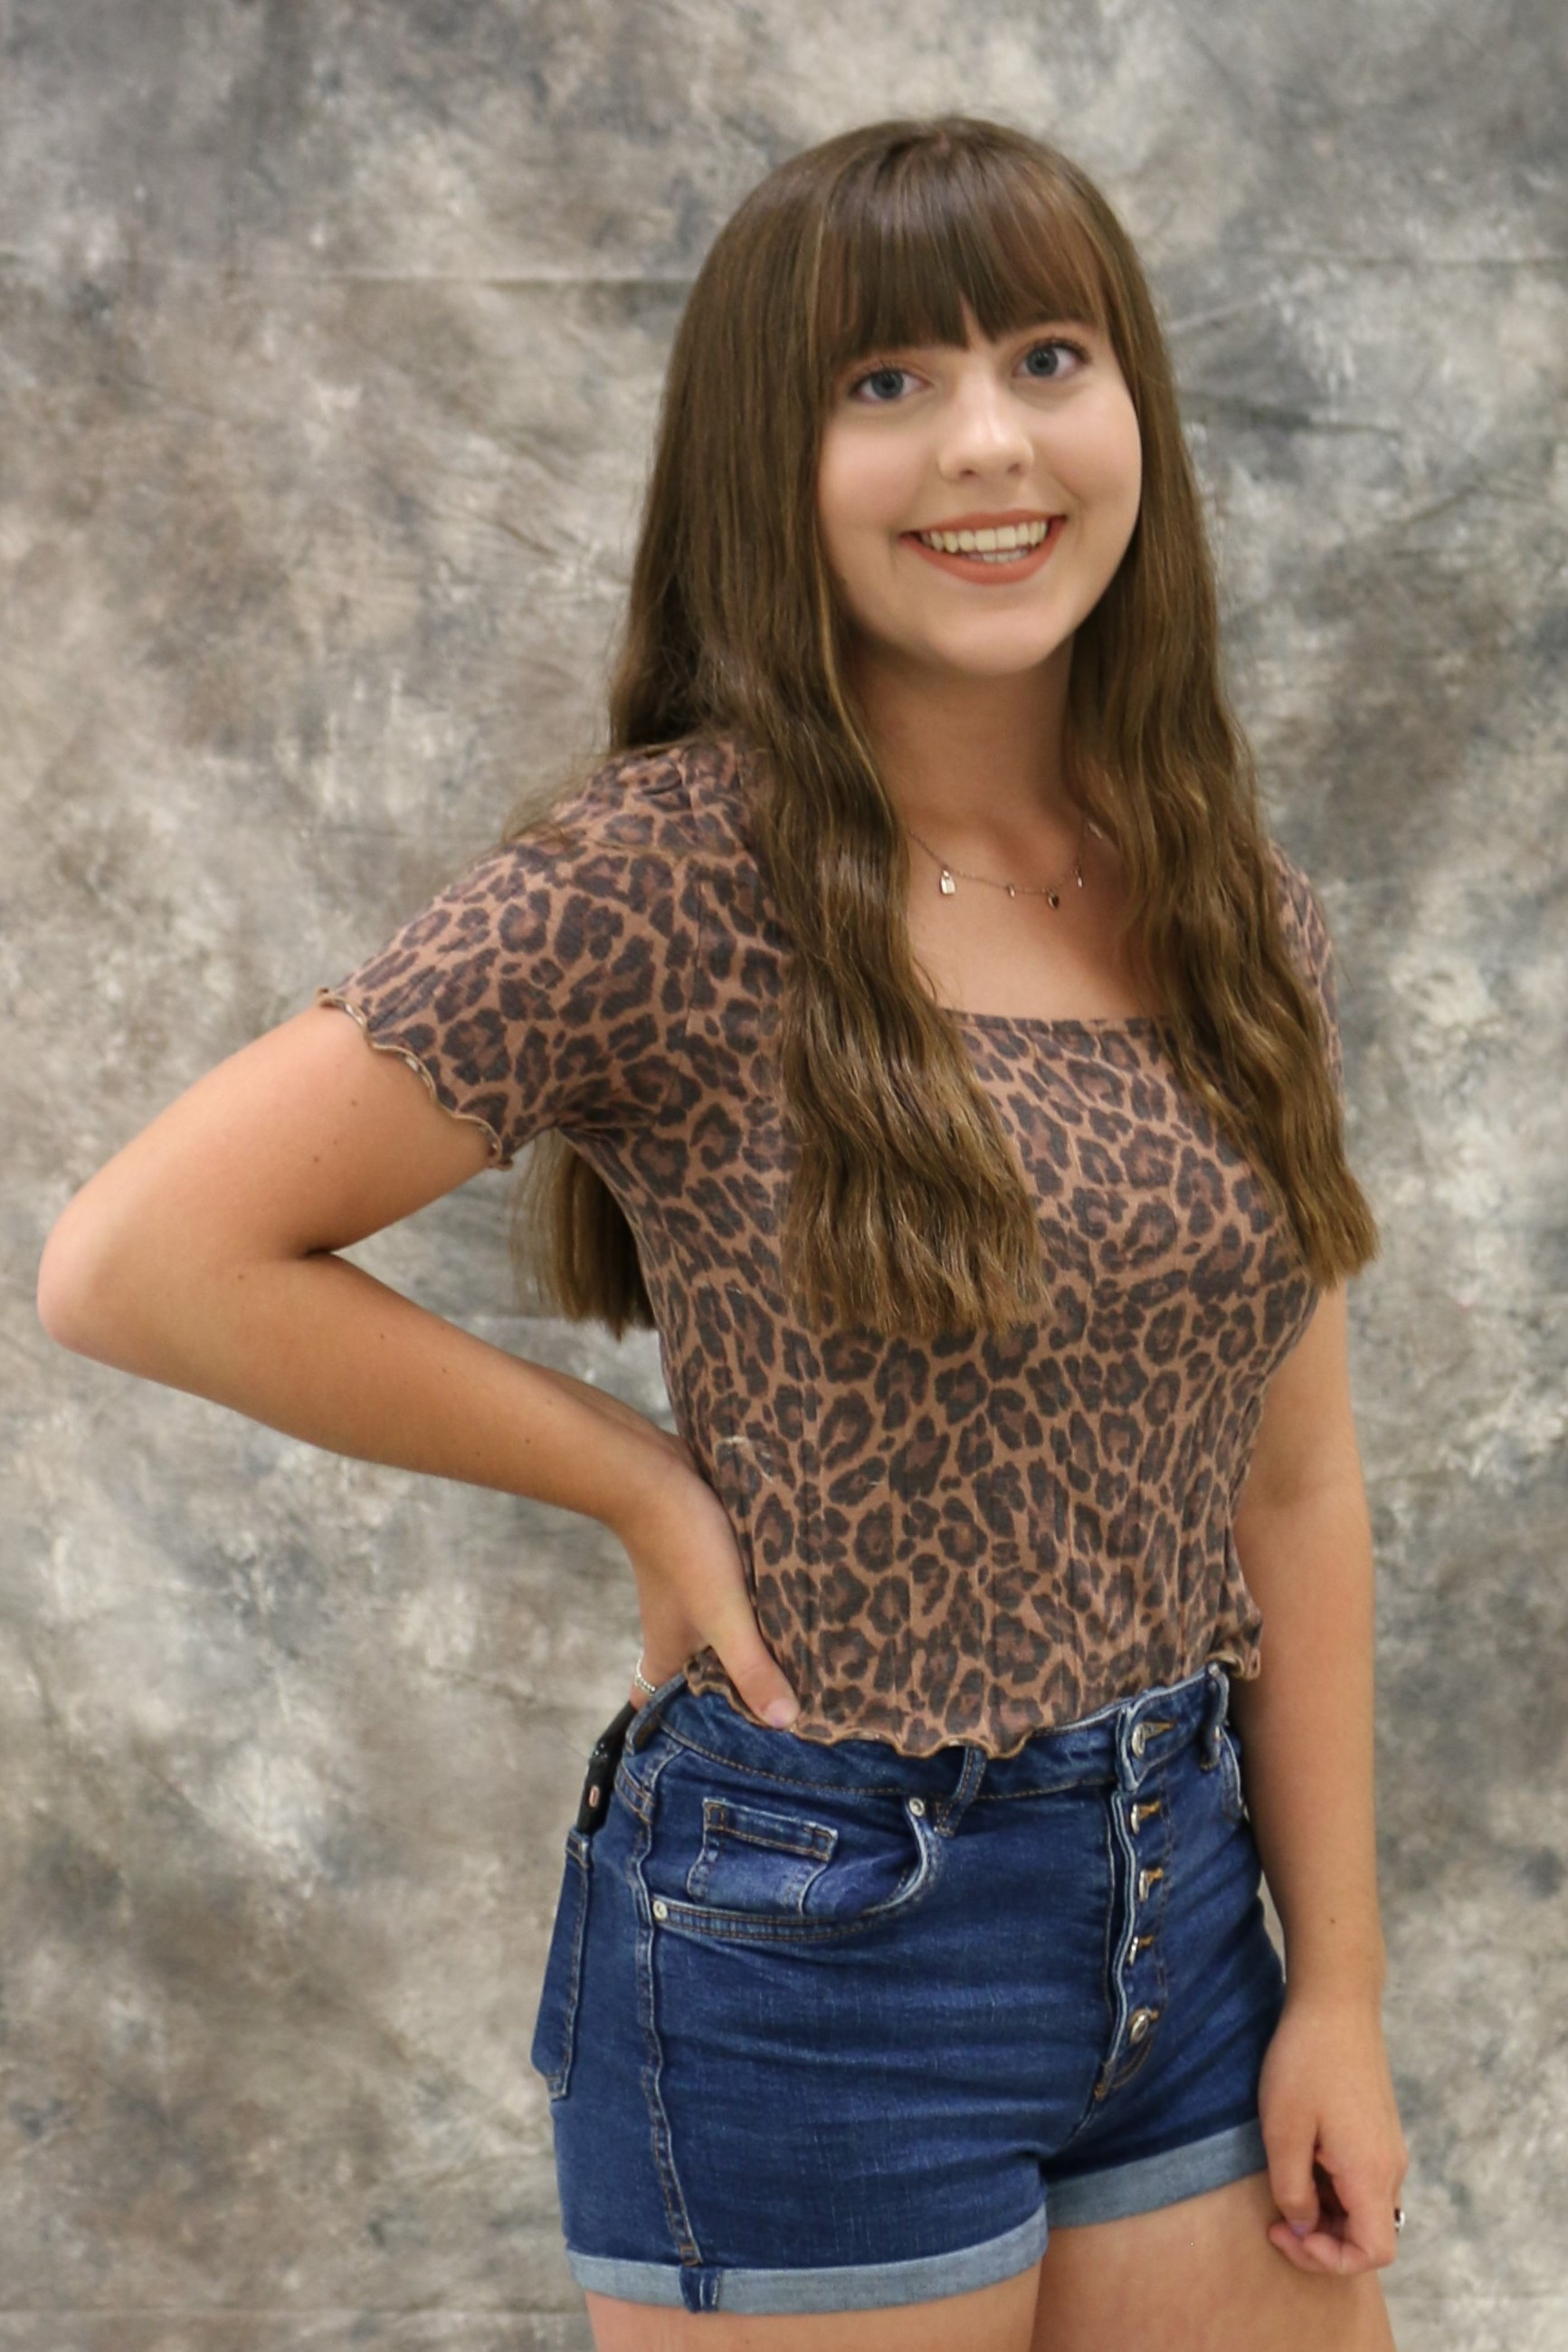 Queen Contestant - Madyson Satterfield 16